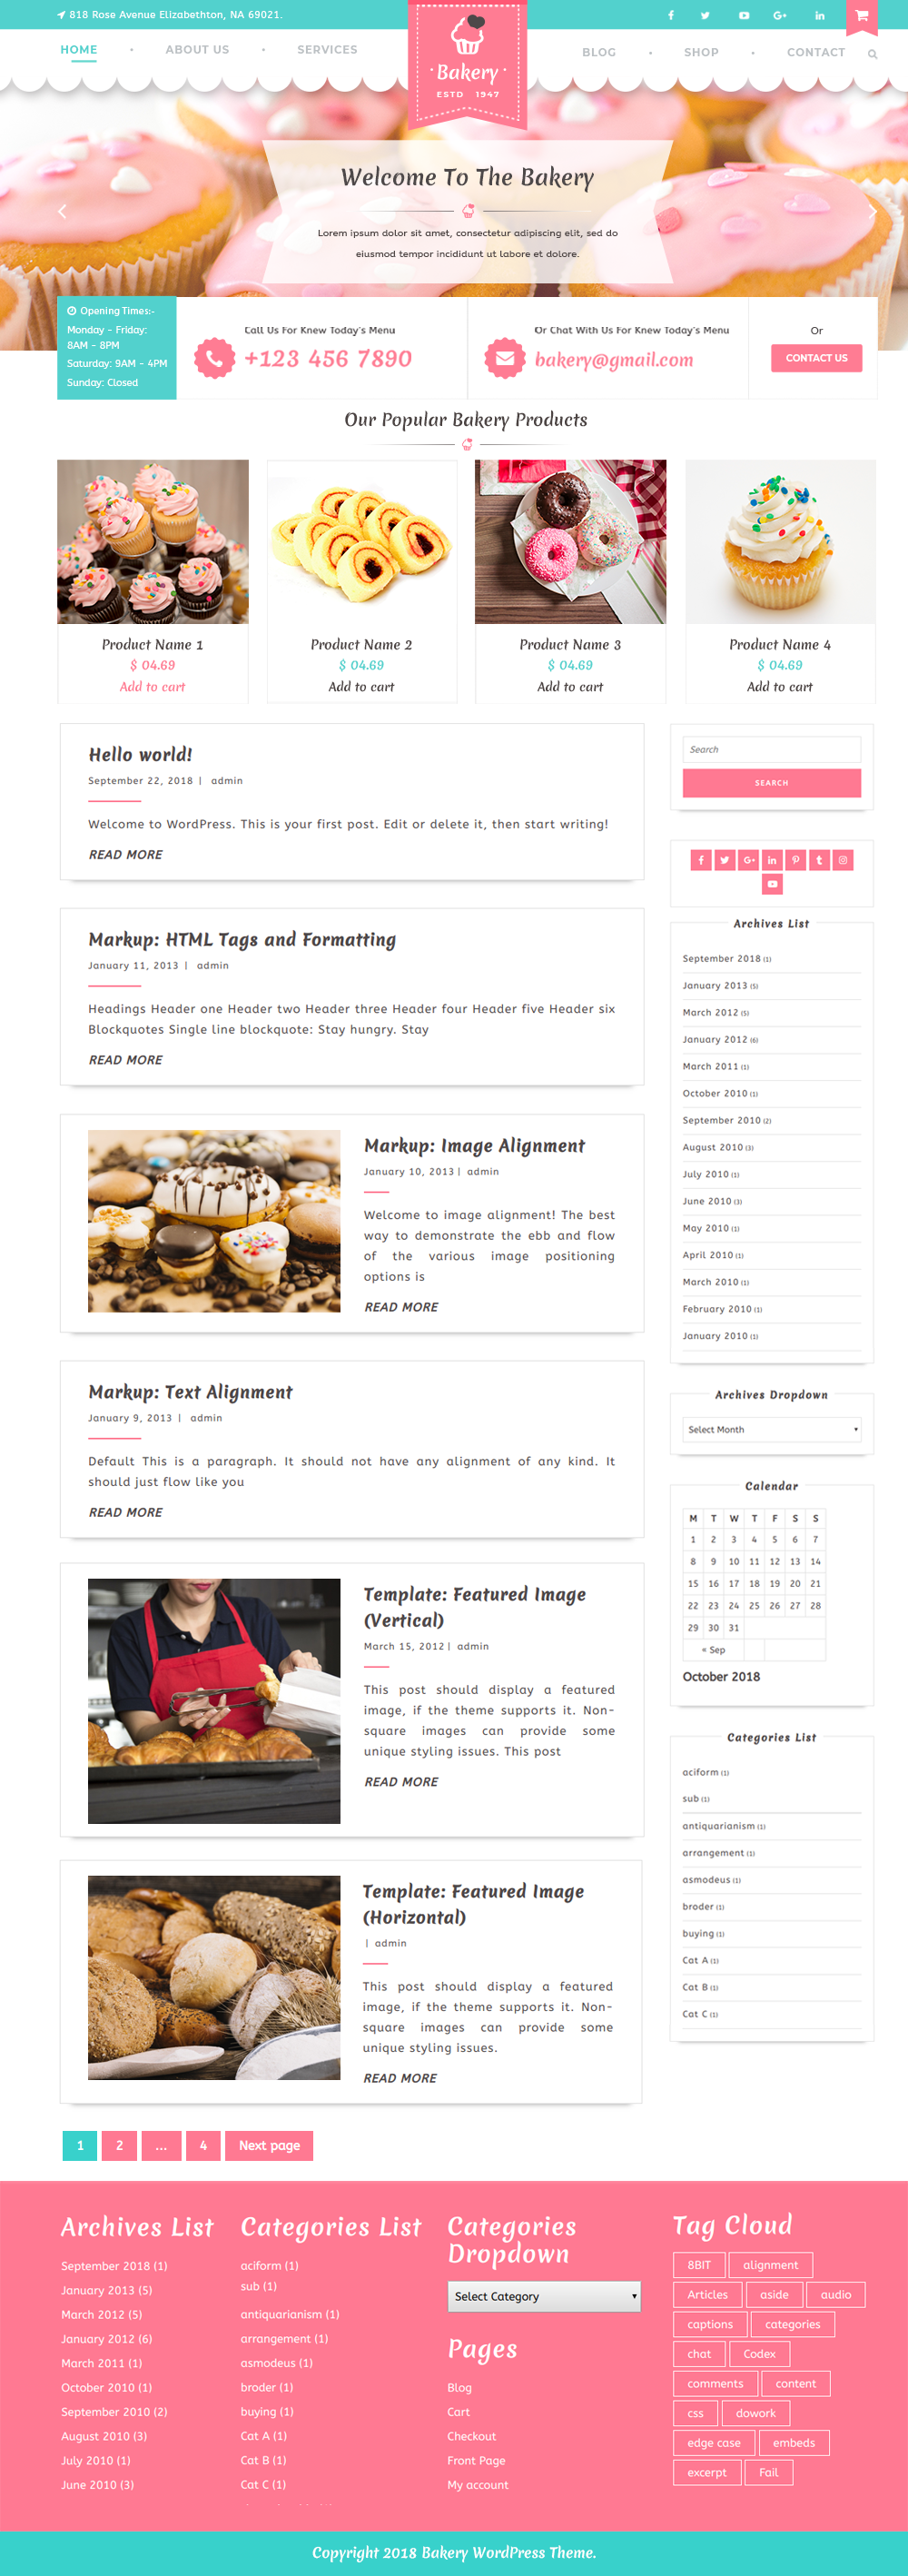 Best Responsive Free Bakery WordPress Theme for Bakery Stores